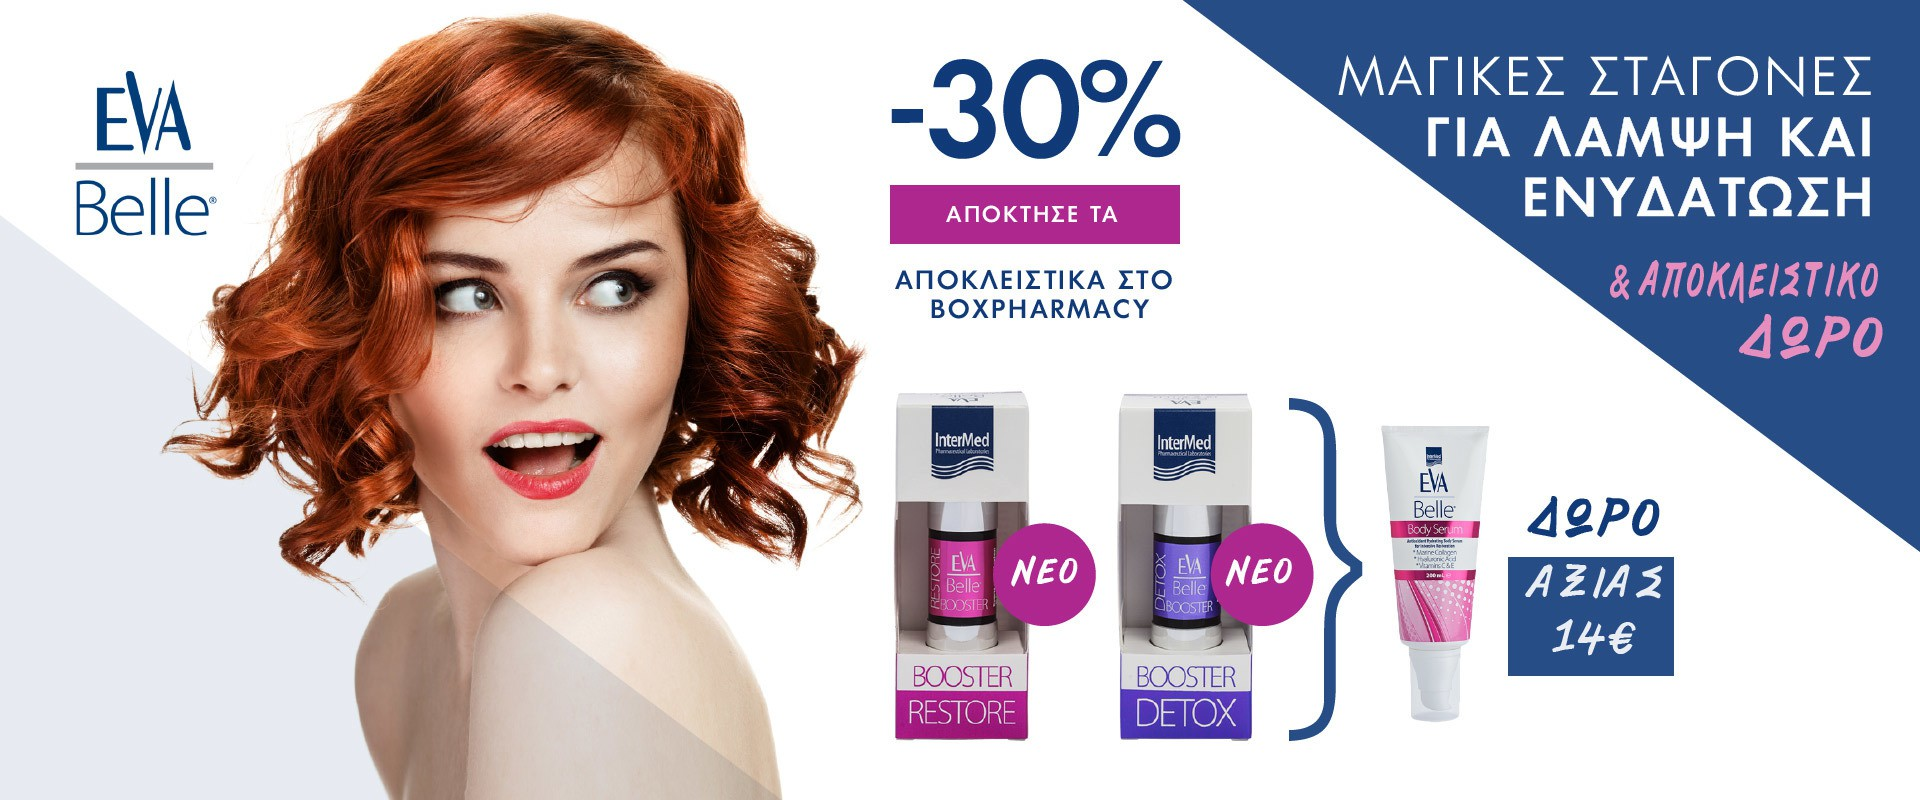 Eva Belle Boosters με ΔΩΡΟ